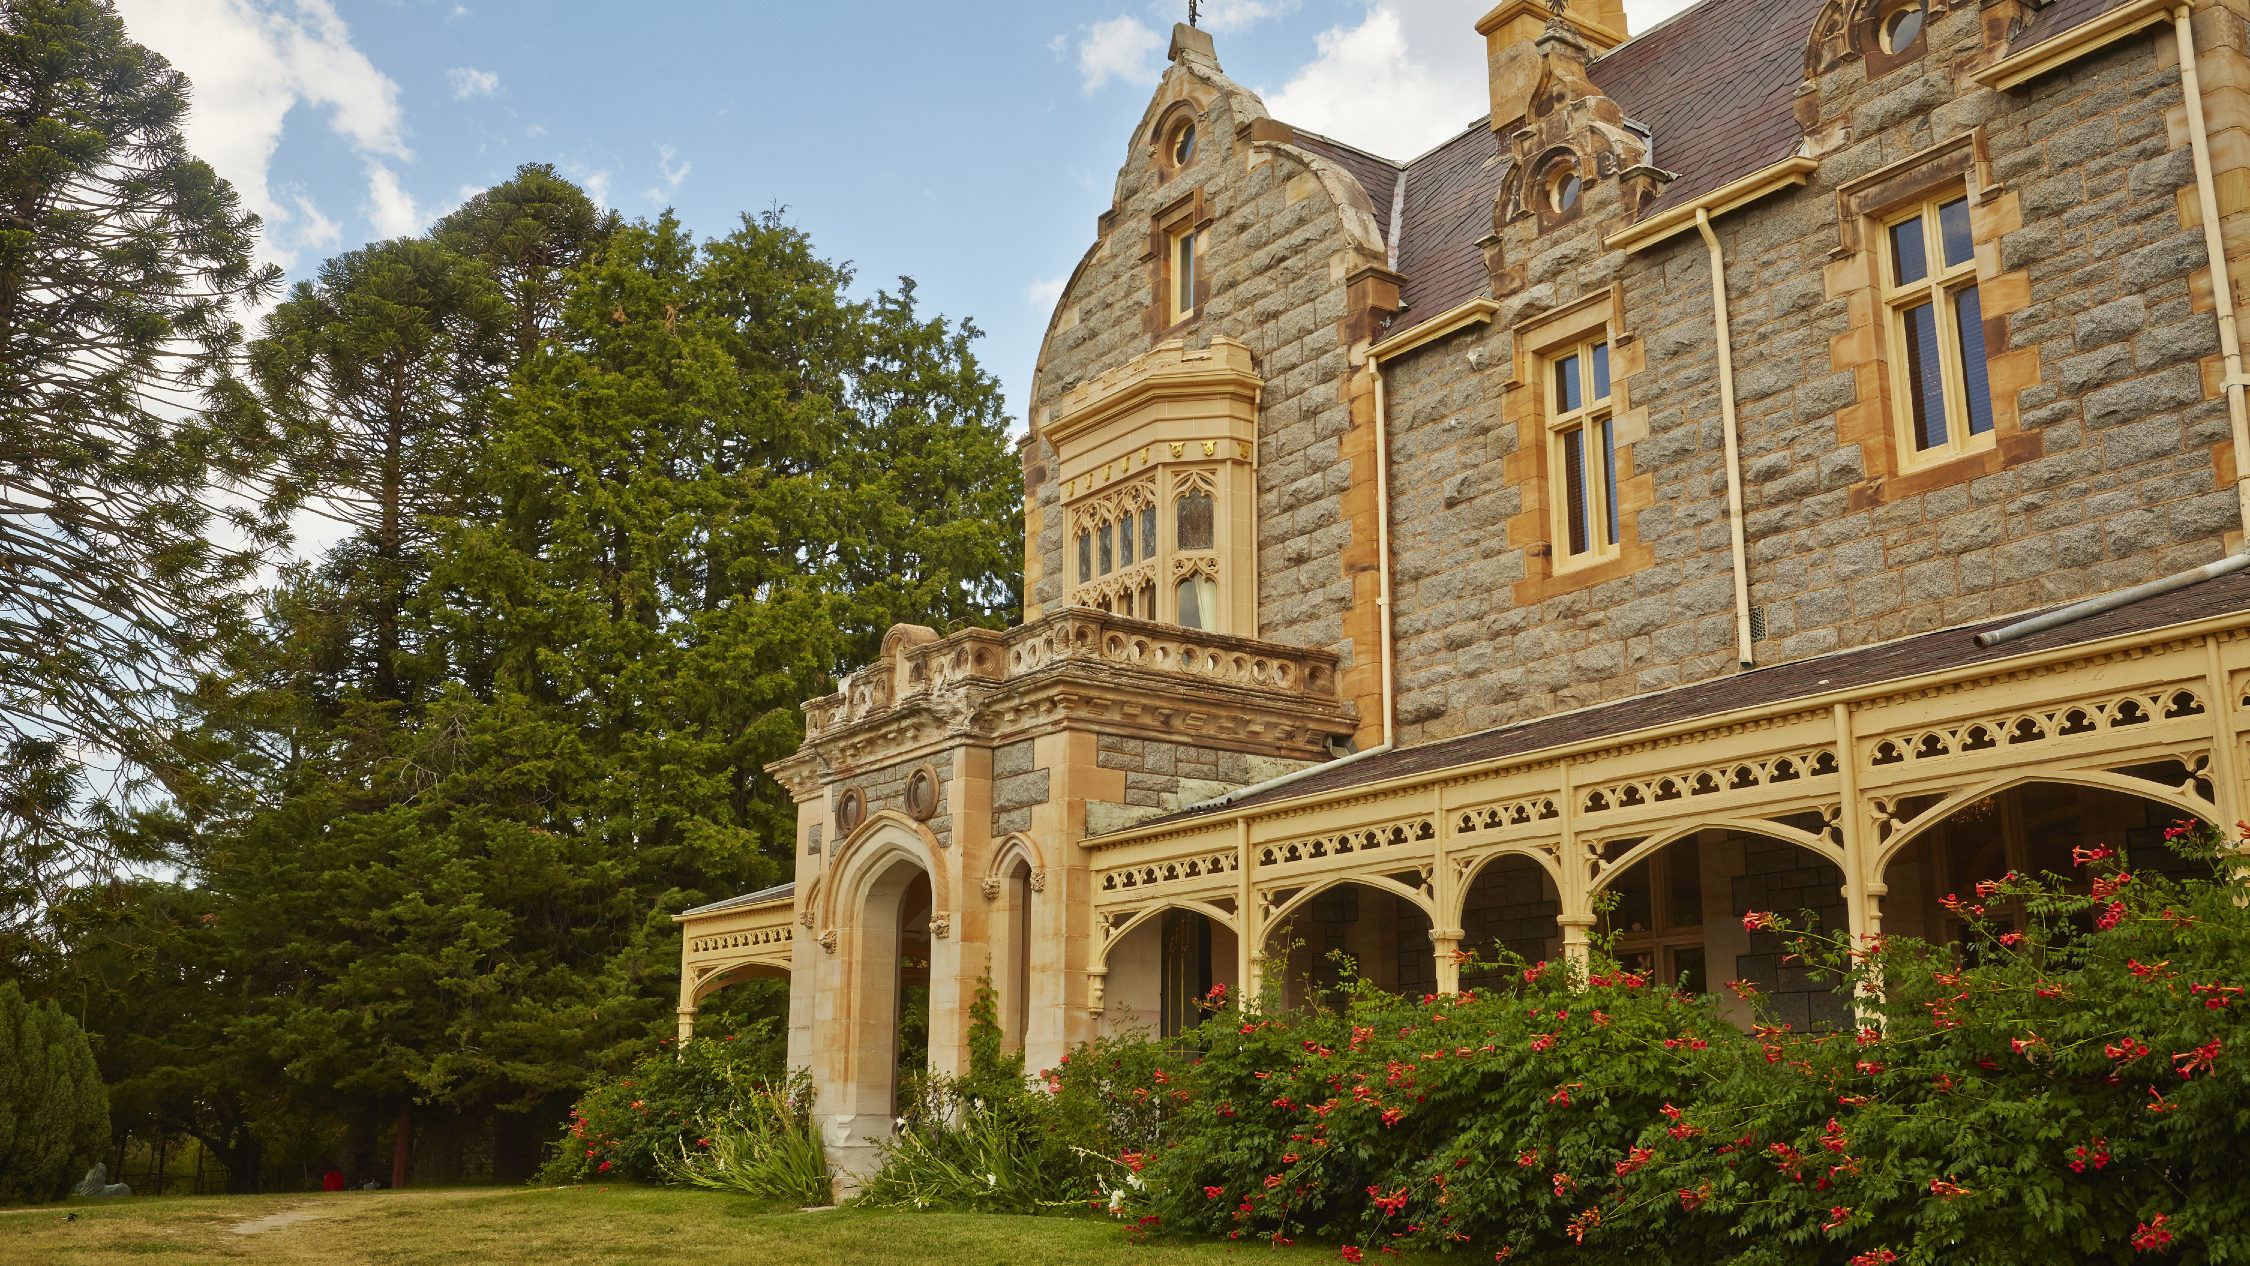 The facade of Abercrombie House in Bathurst